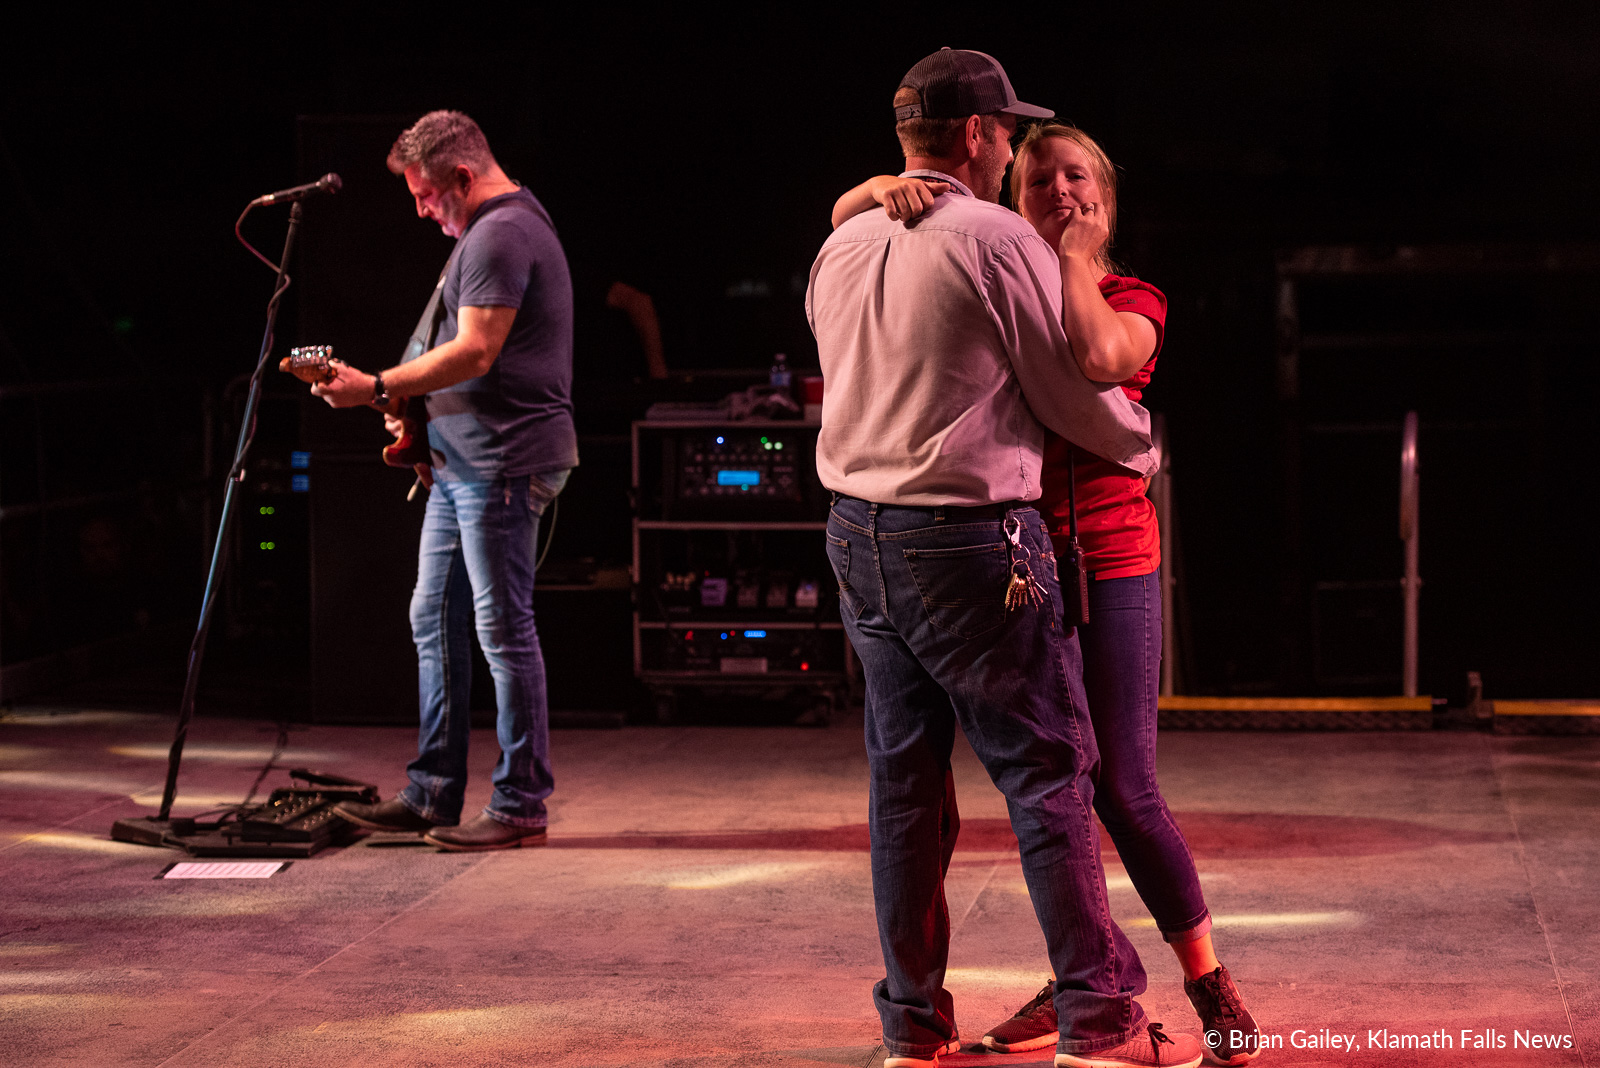 Drew Patzke, a Klamath County Fairgrounds maintenance employee dances with his new fiance, Kaitlin Collom on stage as Lonestar plays Amazed. Patzke proposed to Collom moments earlier on stage with the help of Lonestar. August 3, 2019. (Image, Brian Gailey / Klamath Falls News)